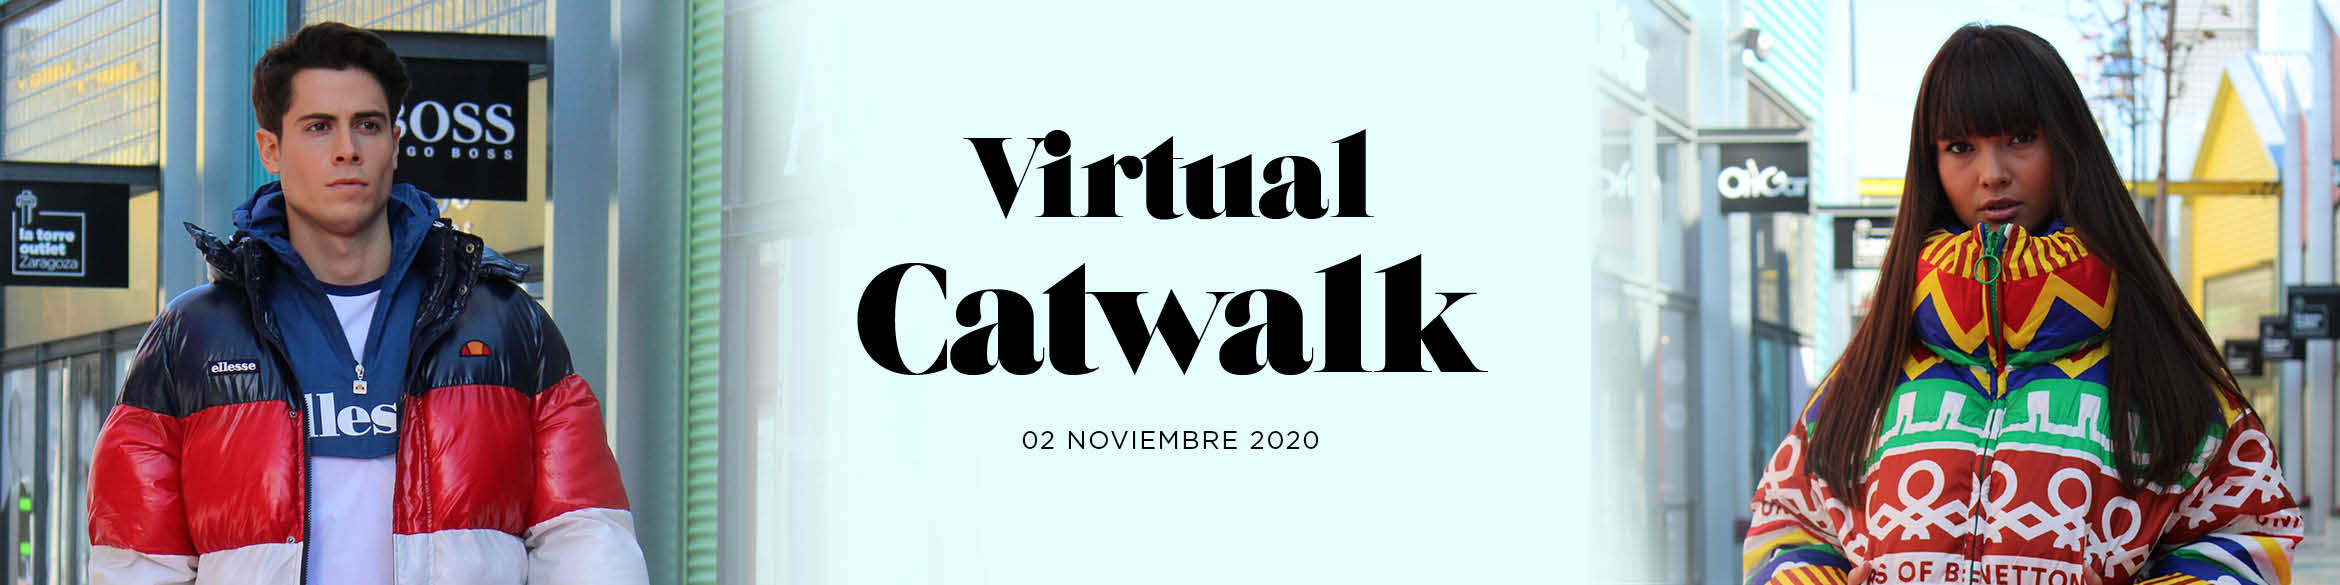 FIRST EDITION OF OUR VIRTUAL CATWALK